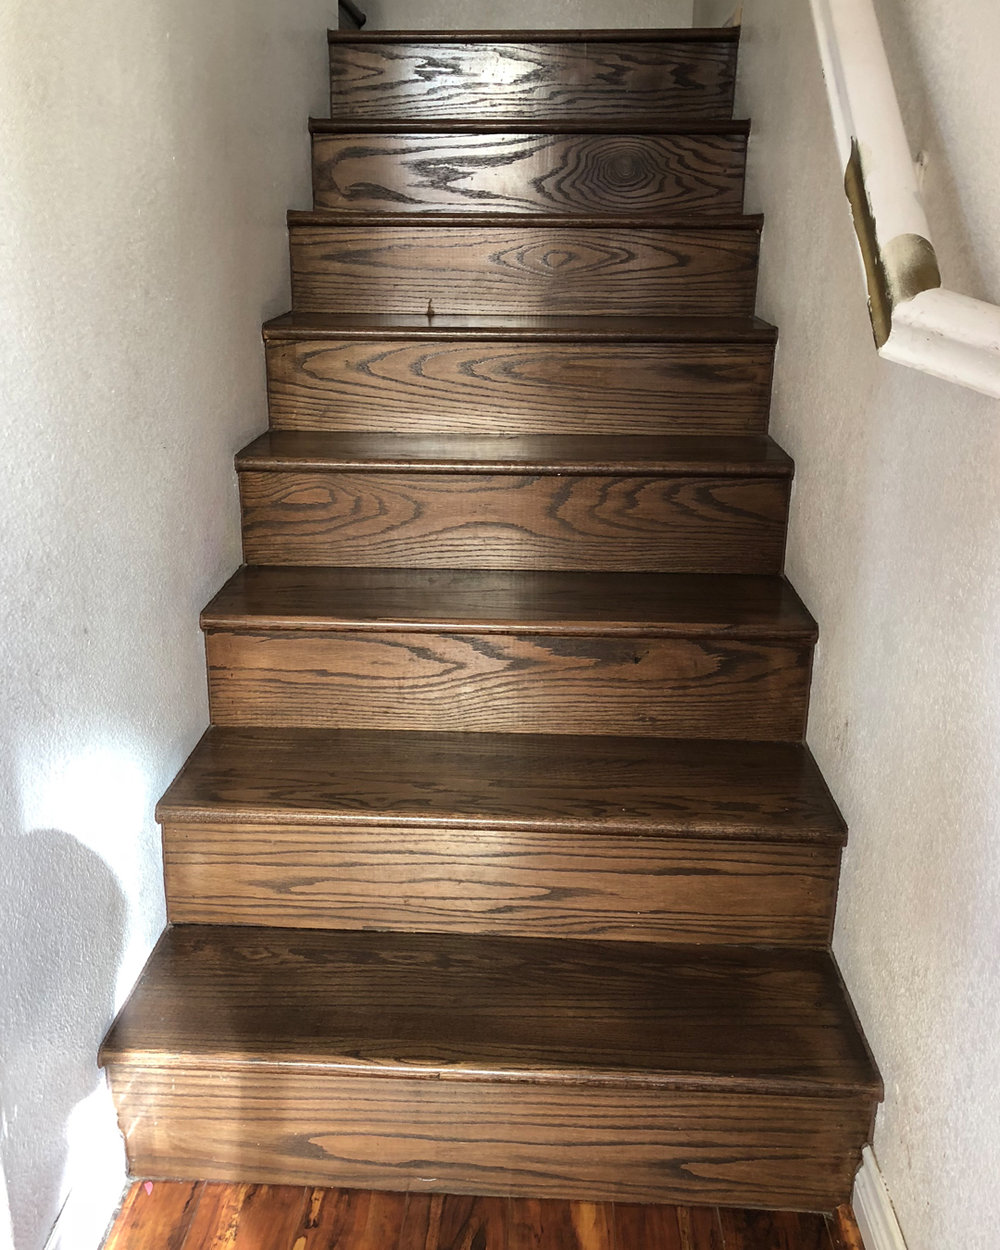 what paint to use on stairs, how do you paint wooden steps, how to paint stair risers, how to paint stairs the easy way, how to paint and refinish your stairs, painting stair steps and staircases, gorgeous painted stair ideas, diy painted stairs, DIY blogger inspo, home makeover inspiration, do it yourself home projects